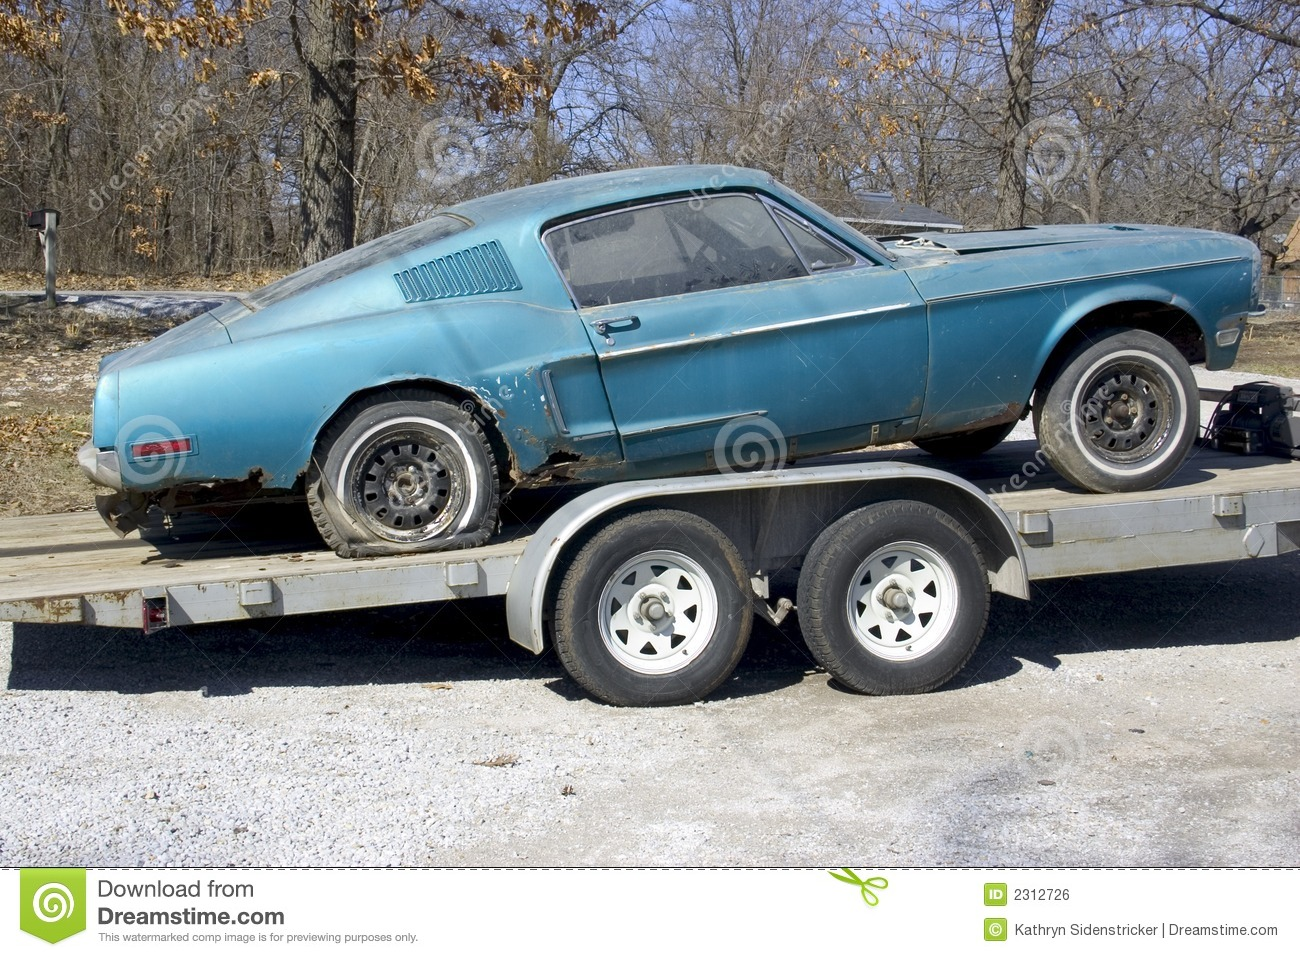 Royalty Free Stock Image 1968 Mustang Fastback Rebuild Image2312726 likewise 3d Printed Slot Car Chassis also StripDoors truck further All Brand New Ala Moana Stores You Can Start Shopping Right Now also Melanie 2. on hobby shop plans